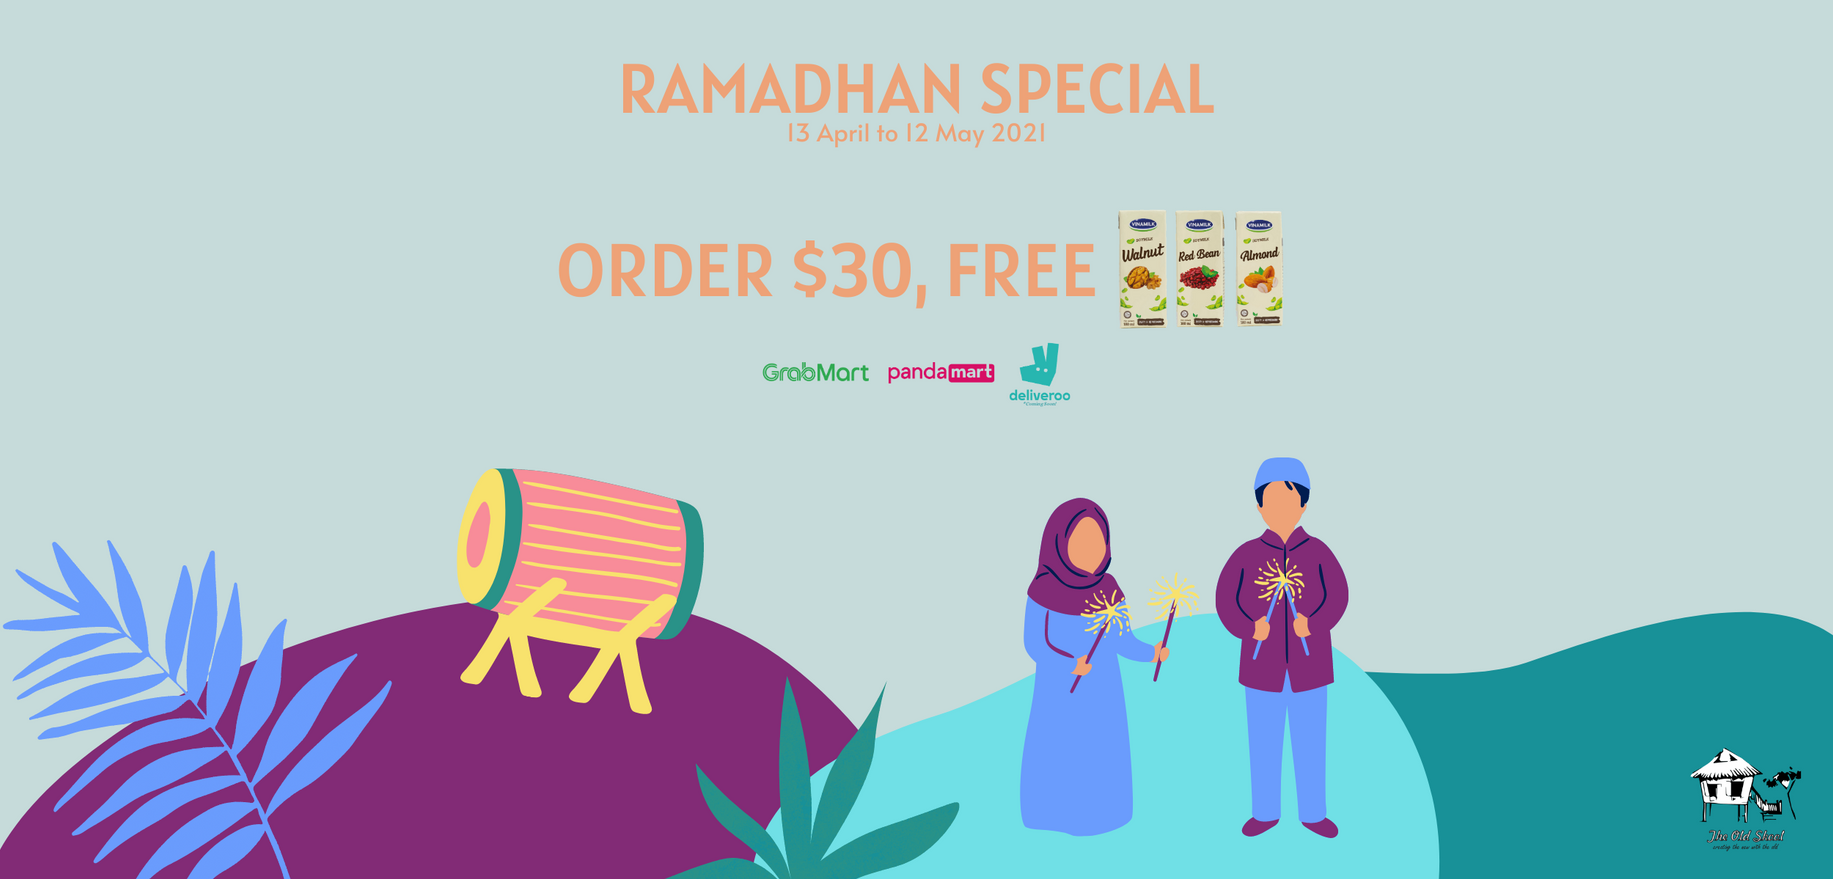 Ramadhan Special